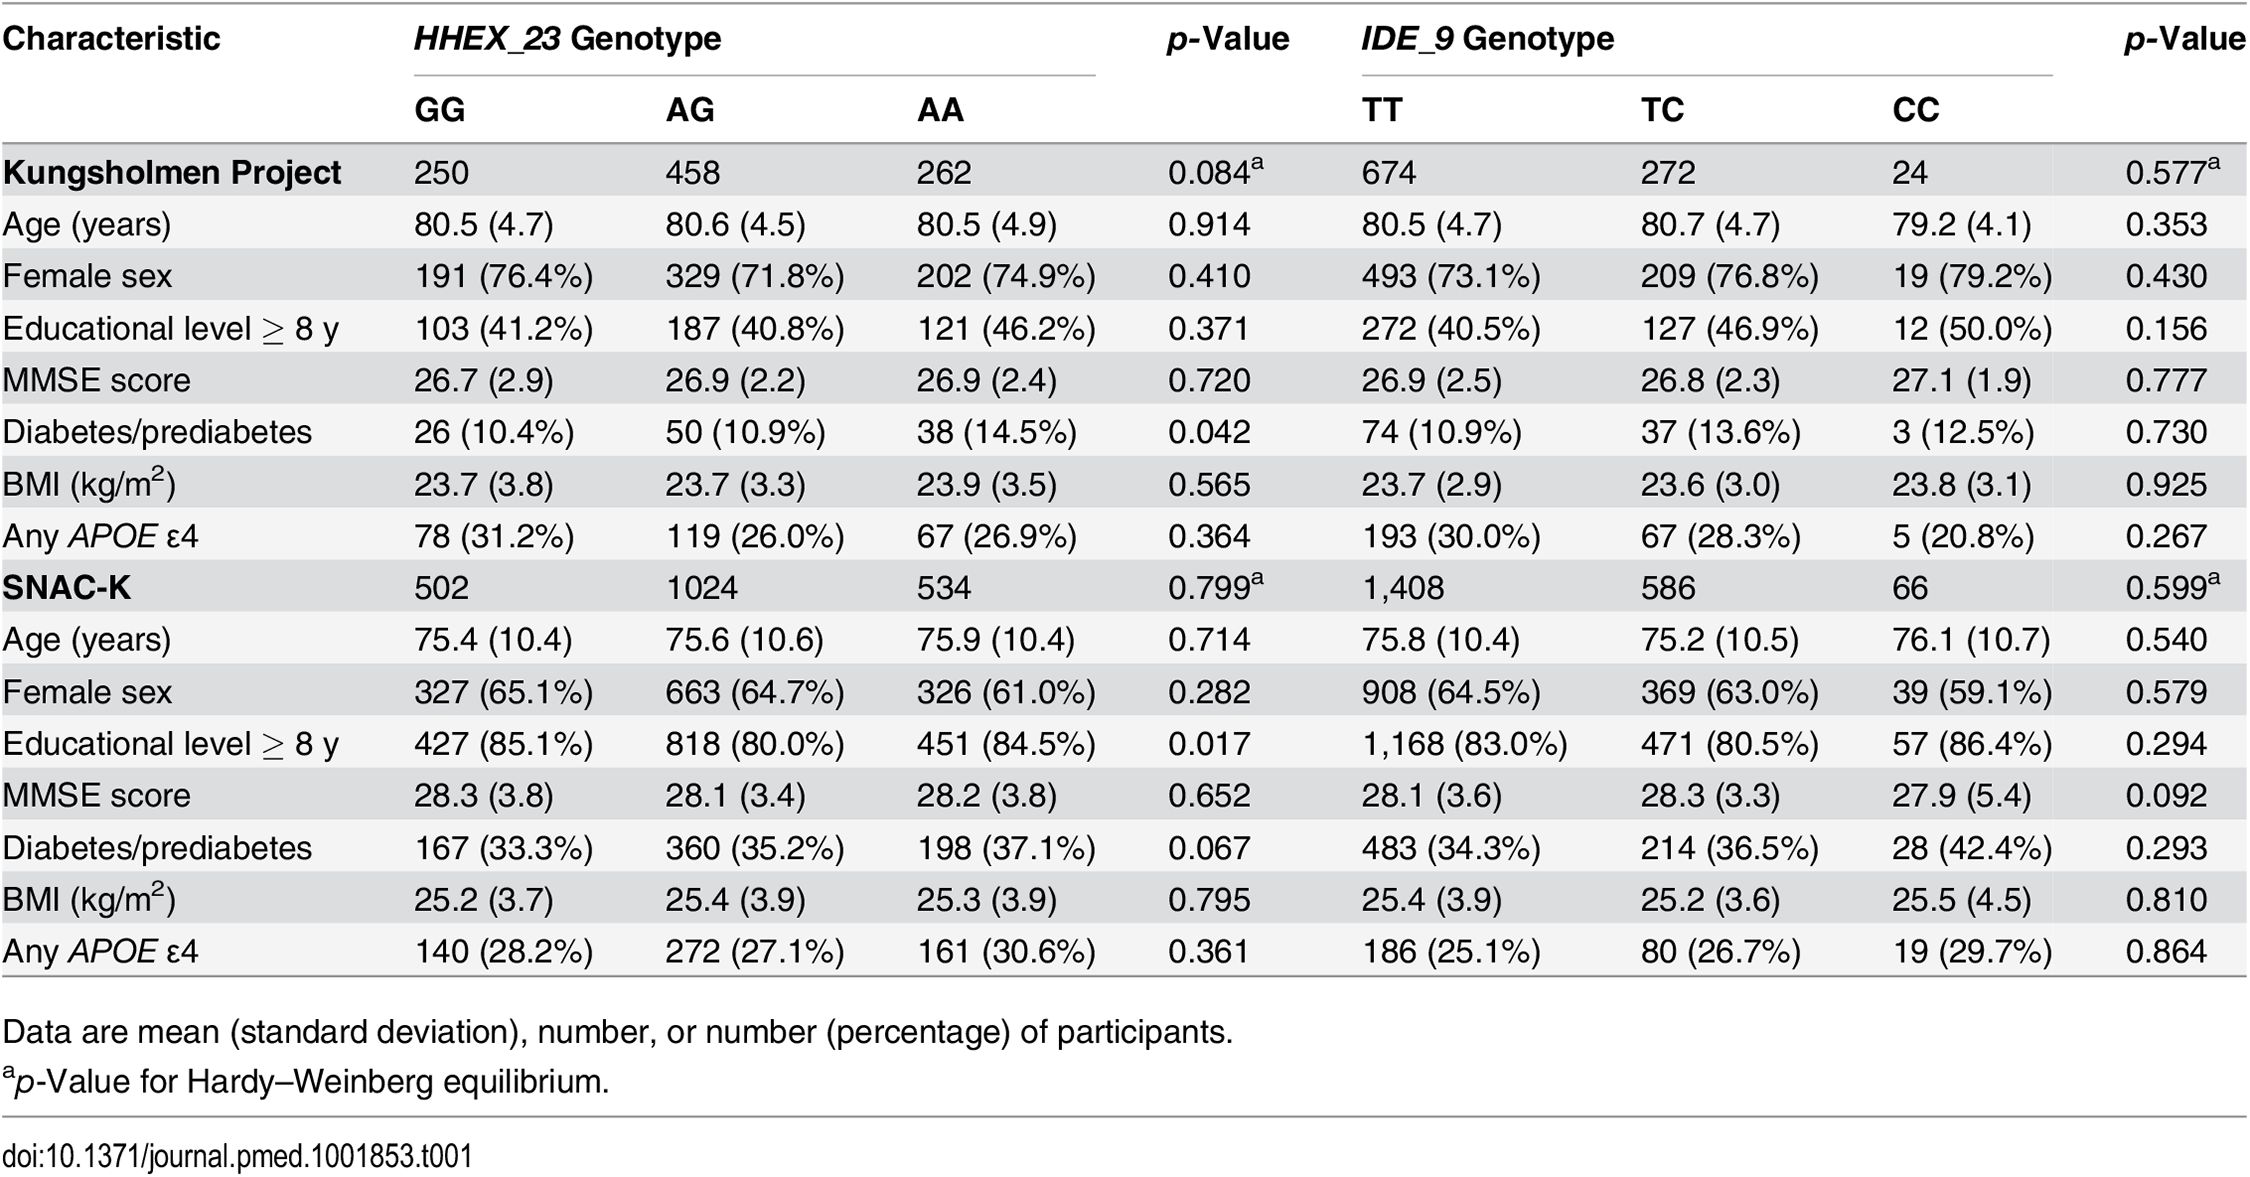 Characteristics of the study populations from the Kungsholmen Project (<i>n</i> = 970) and the SNAC-K (<i>n</i> = 2,060) by <i>HHEX_23</i> and <i>IDE_9</i> genotype.